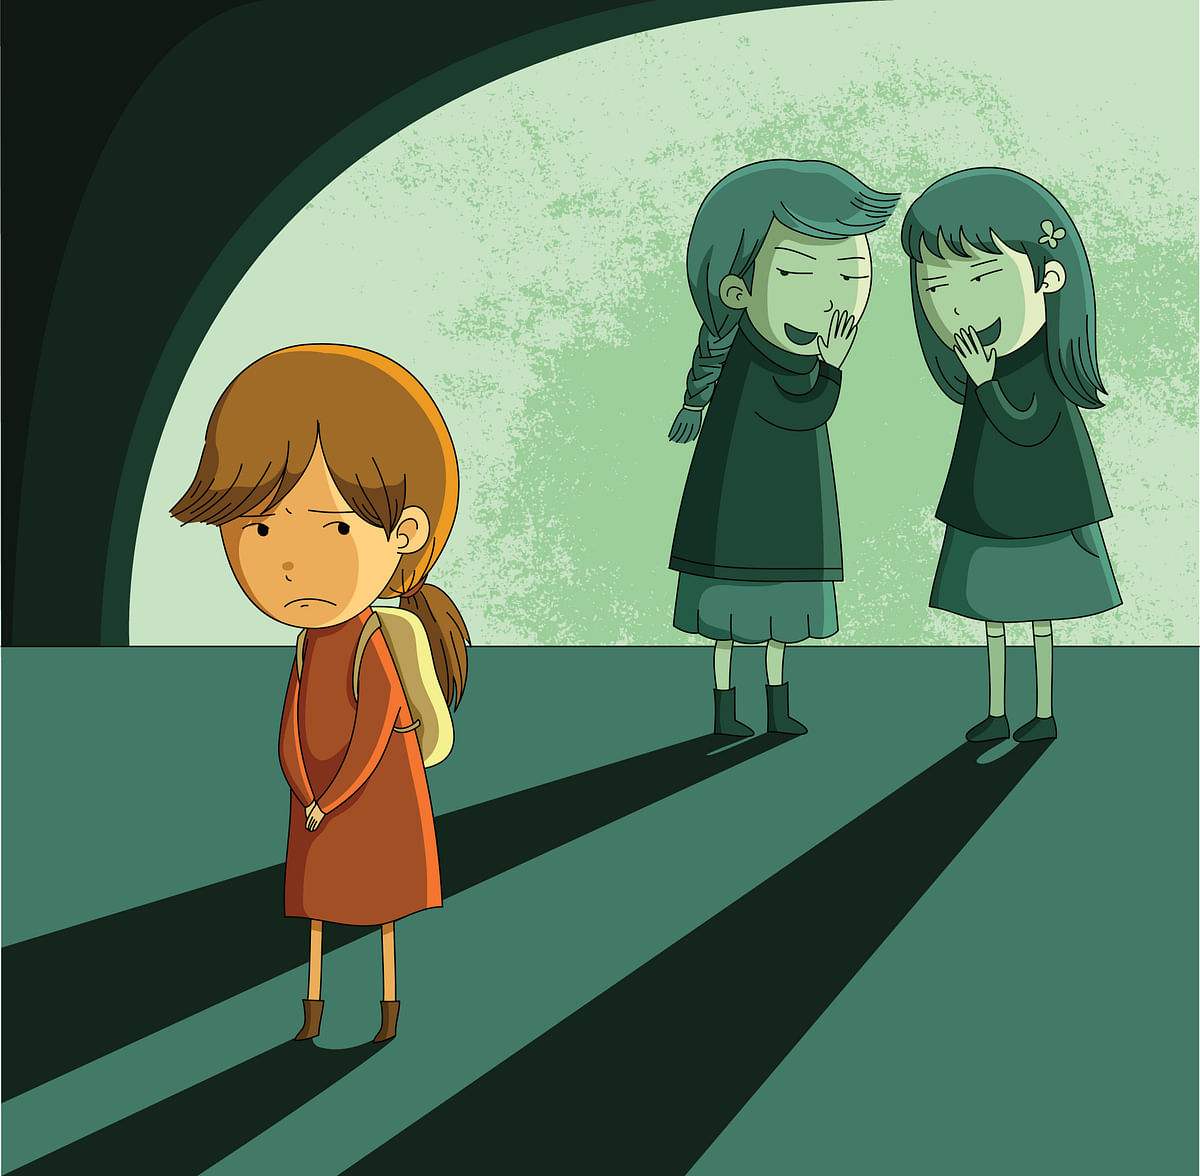 Rejection and 'othering' by peer groups can lead to persistent  social pains.